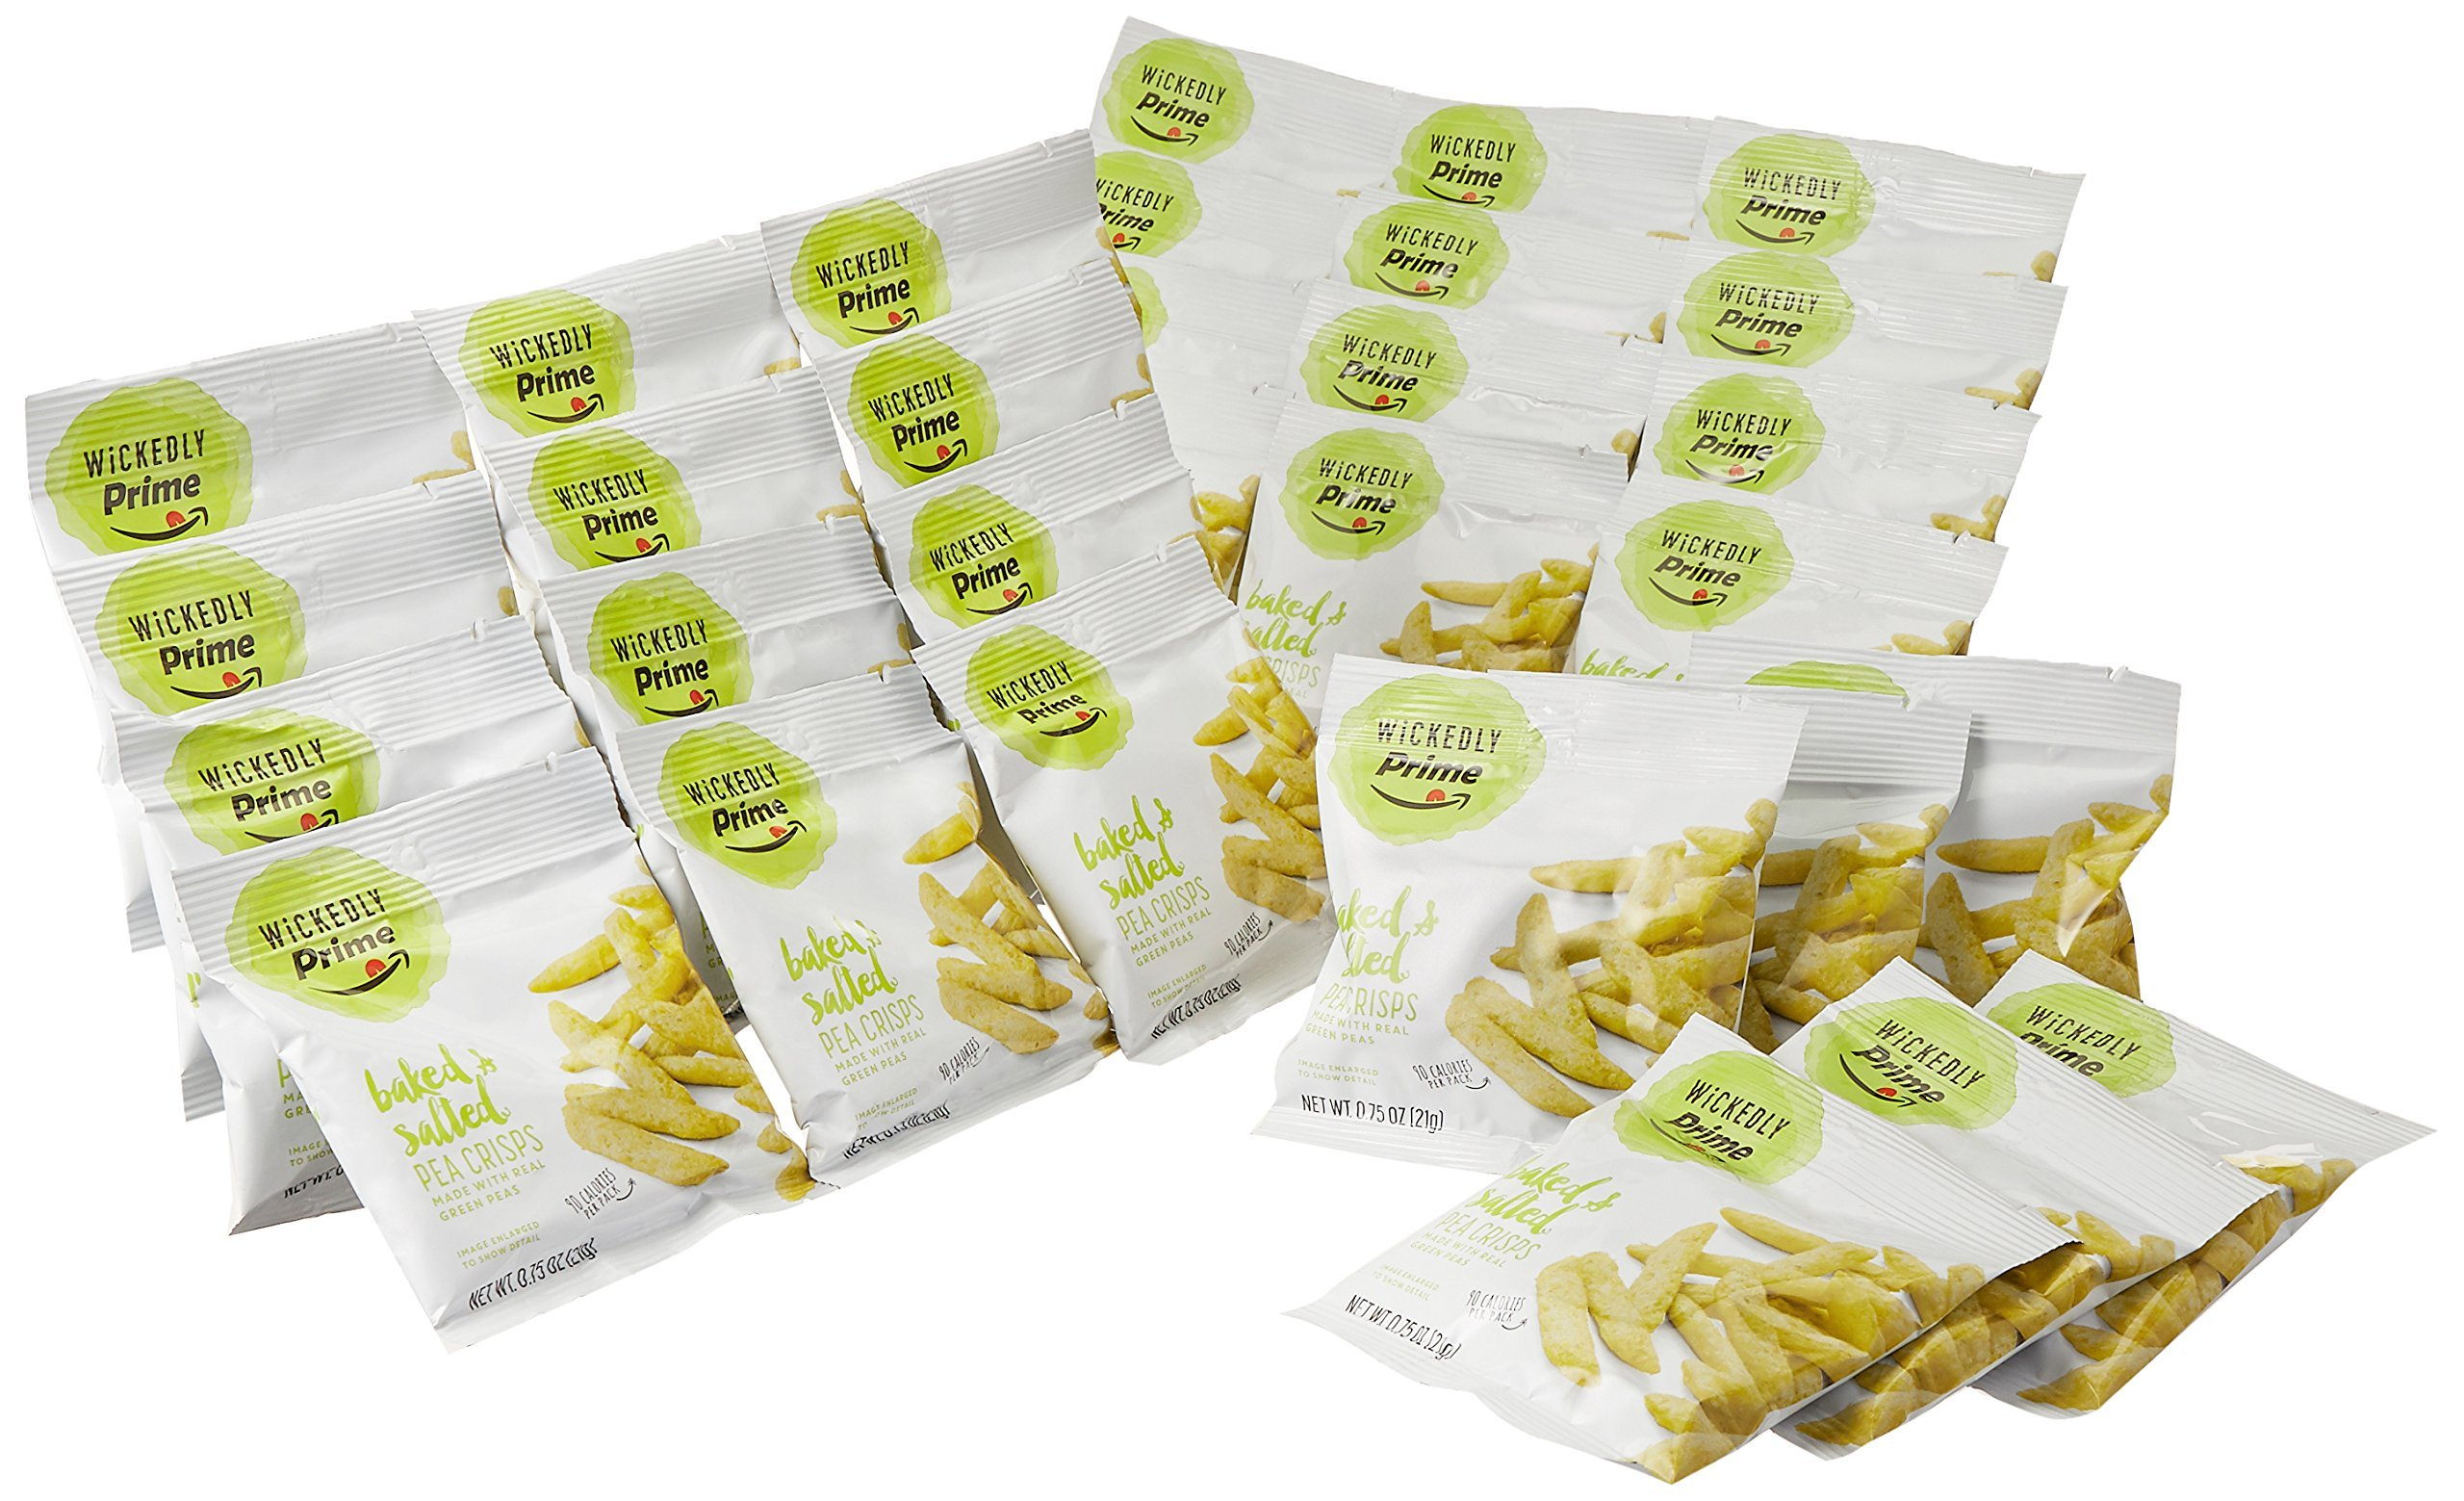 Wickedly Prime Pea Crisps, Snack Pack, 0.75 Ounce (Pack of 30) by Wickedly Prime